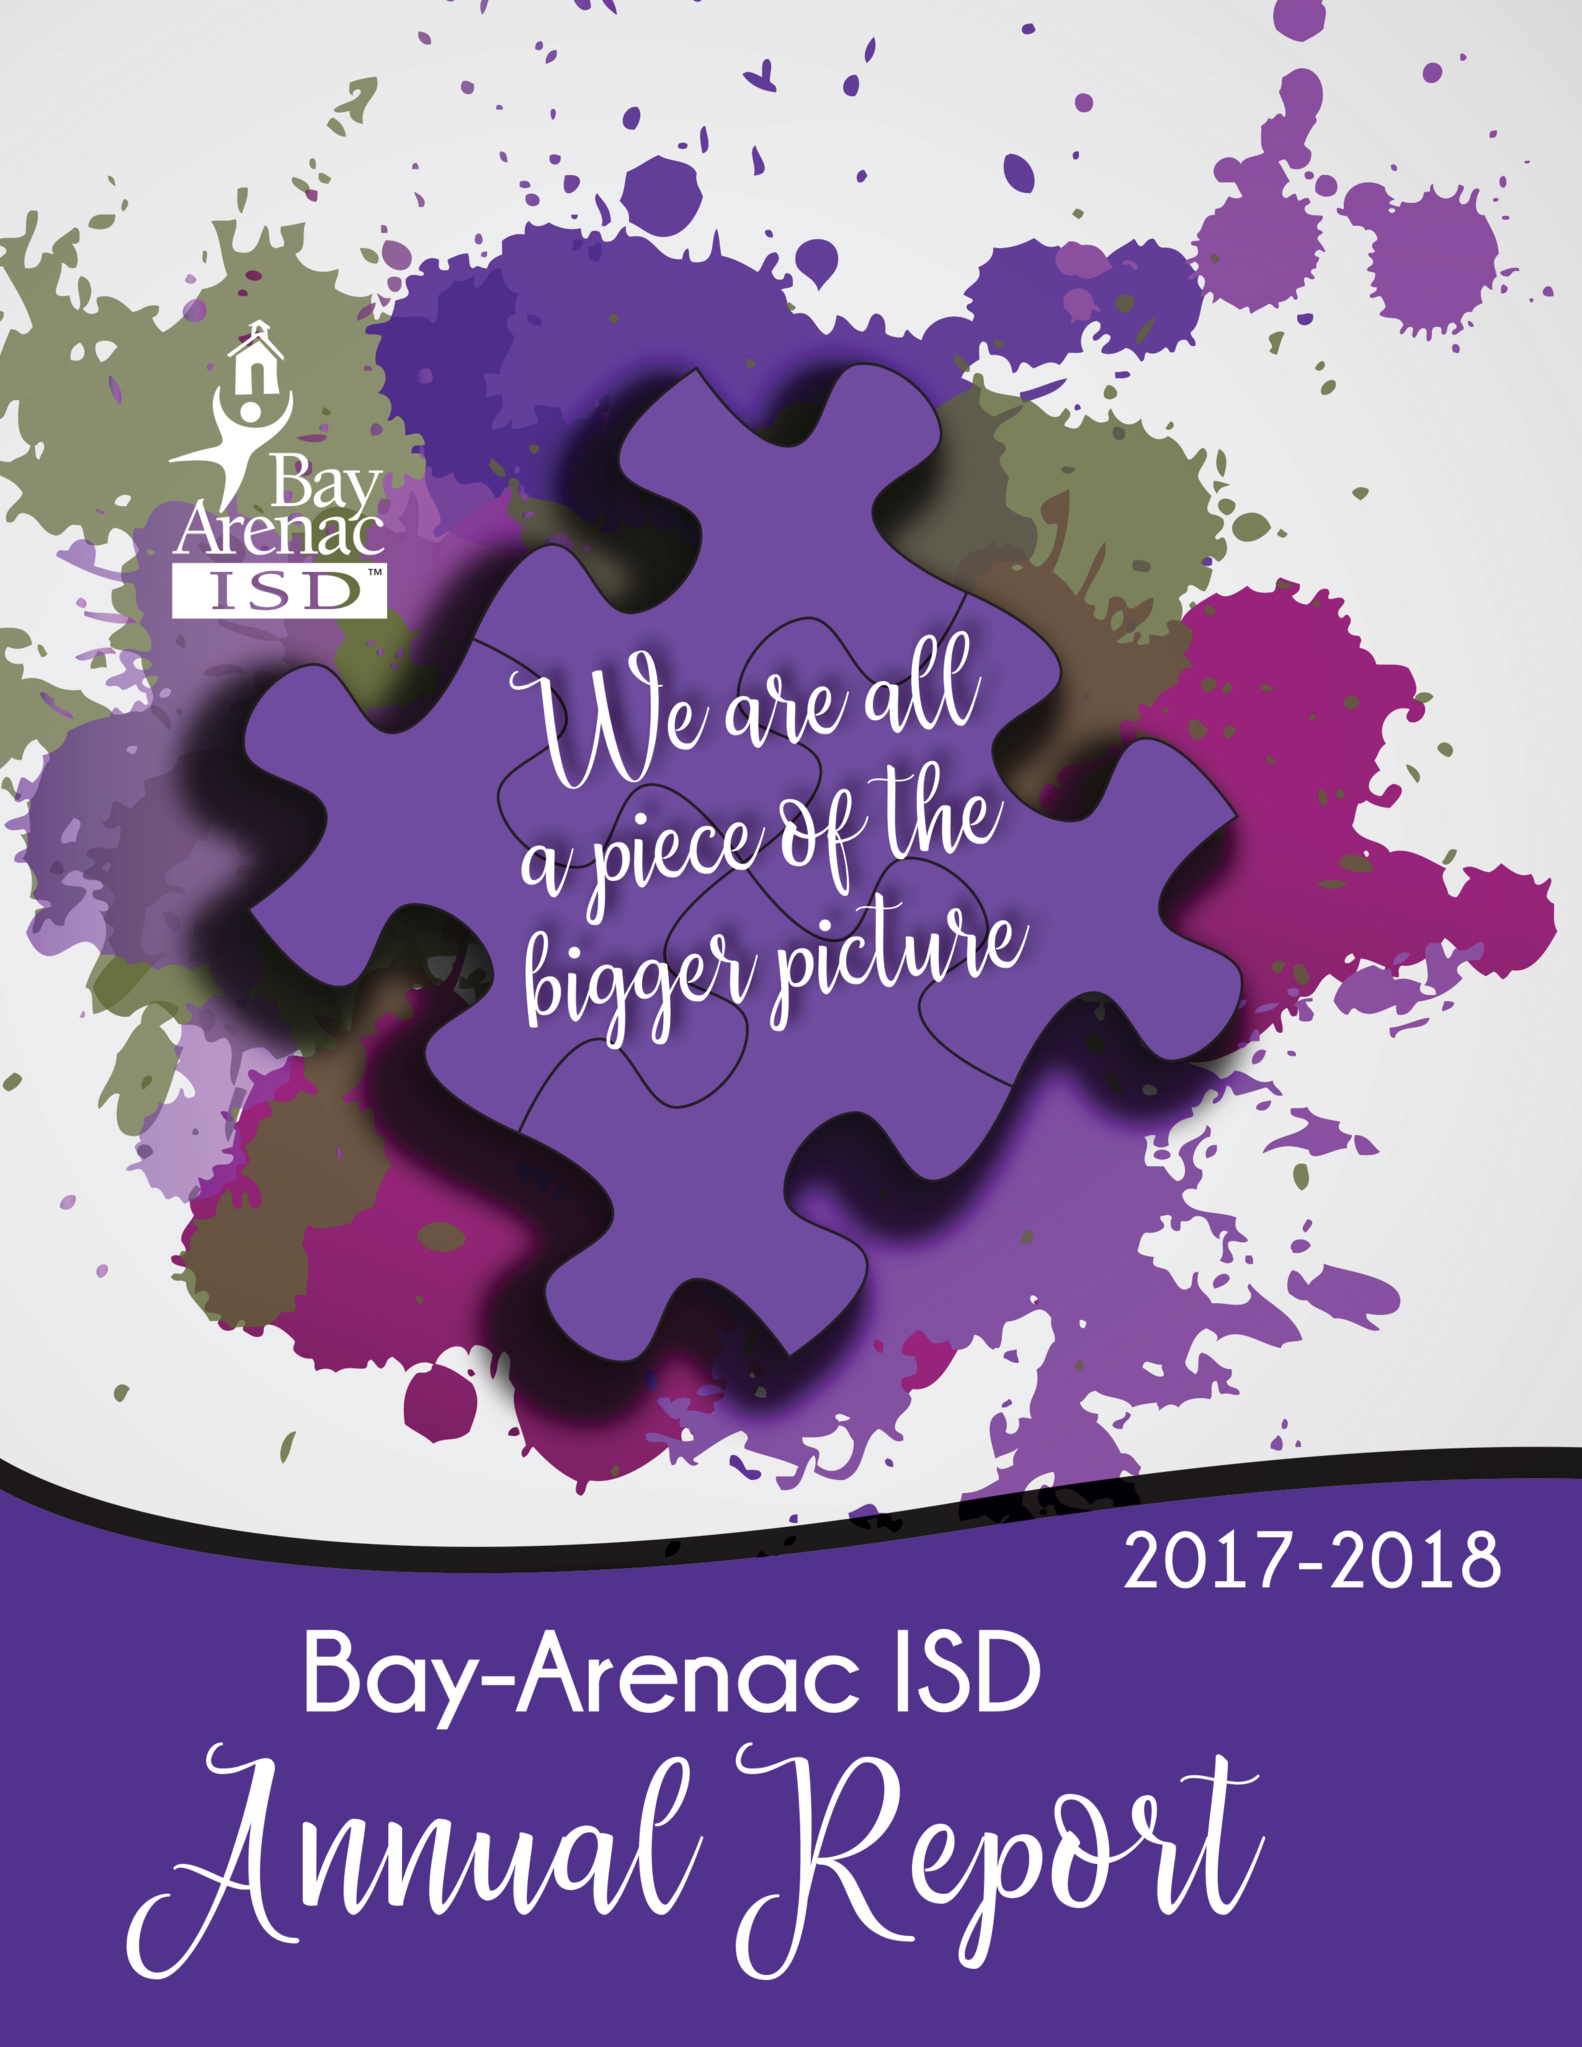 Bay-Arenac ISD 2017-2018 Annual Report cover